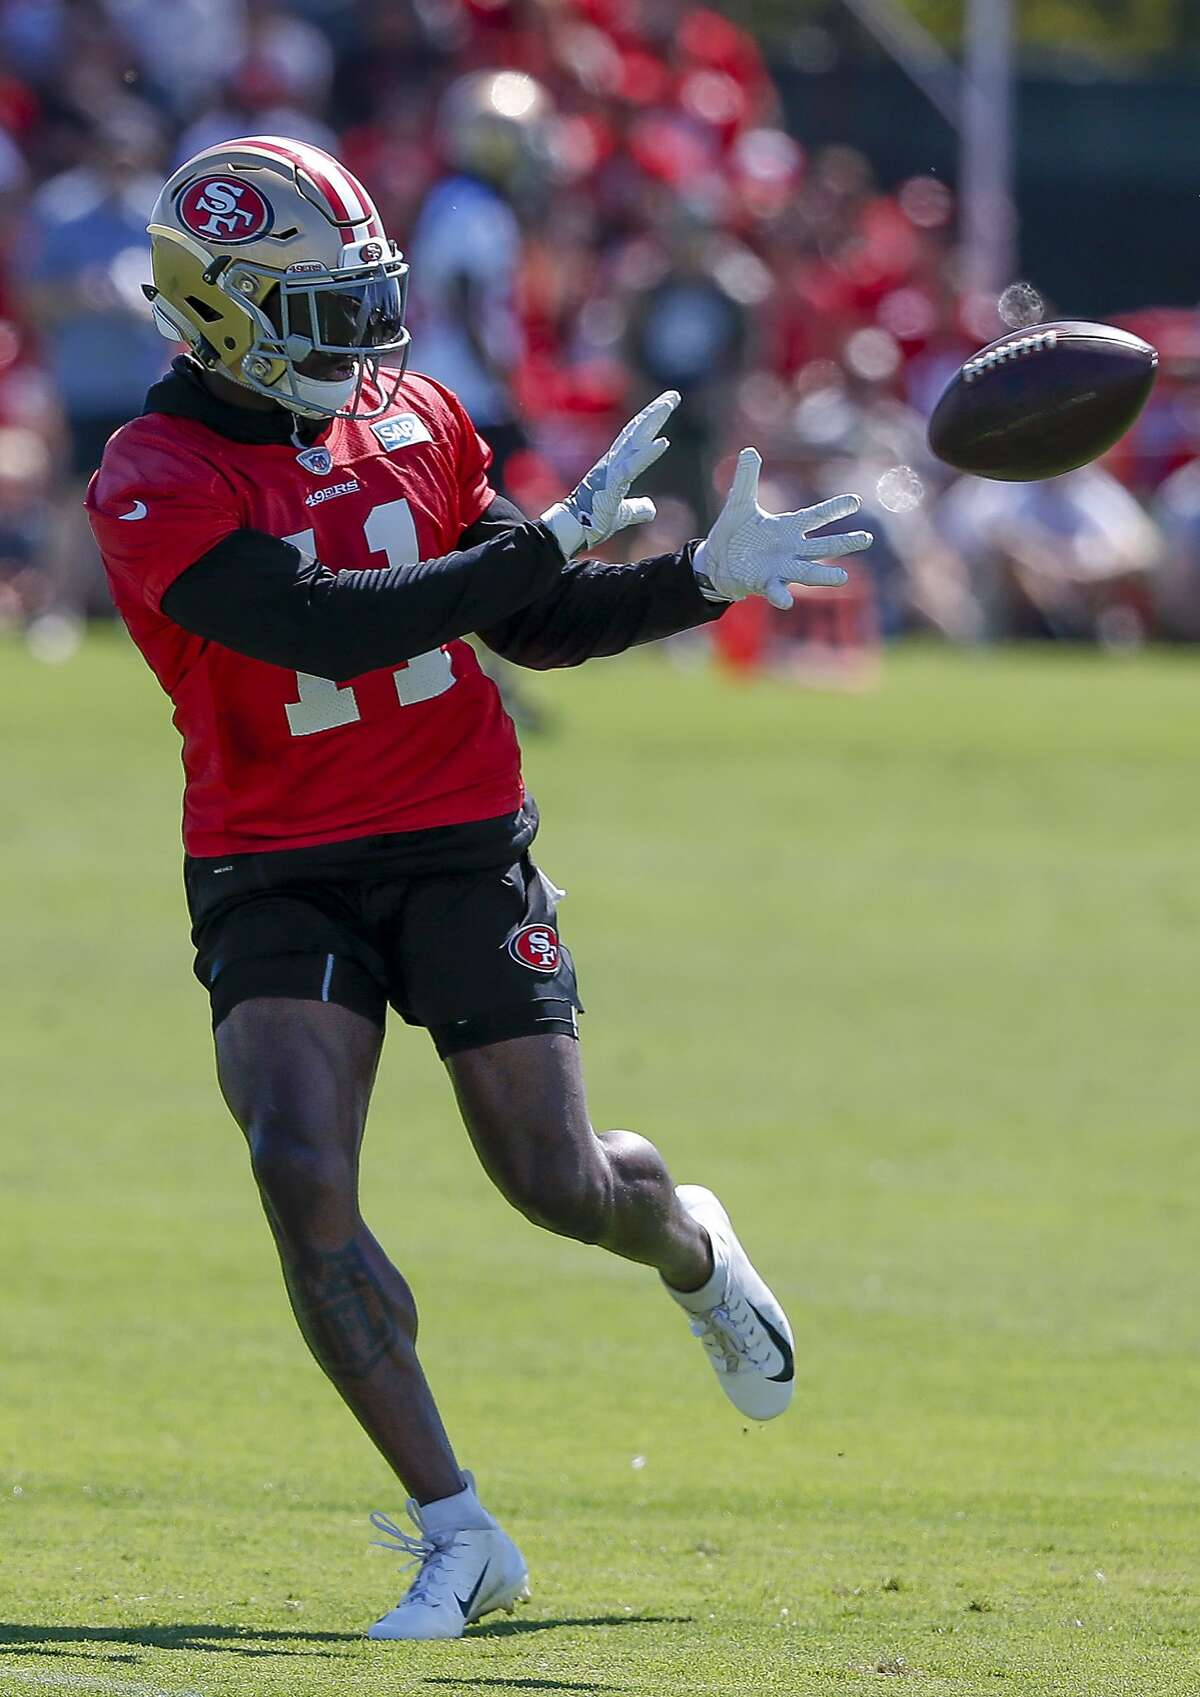 San Francisco 49ers wide receiver Marquise Goodwin (11) catches a pass during NFL football practice at the team's headquarters Friday, July 27, 2018, in Santa Clara, Calif. (AP Photo/Tony Avelar)